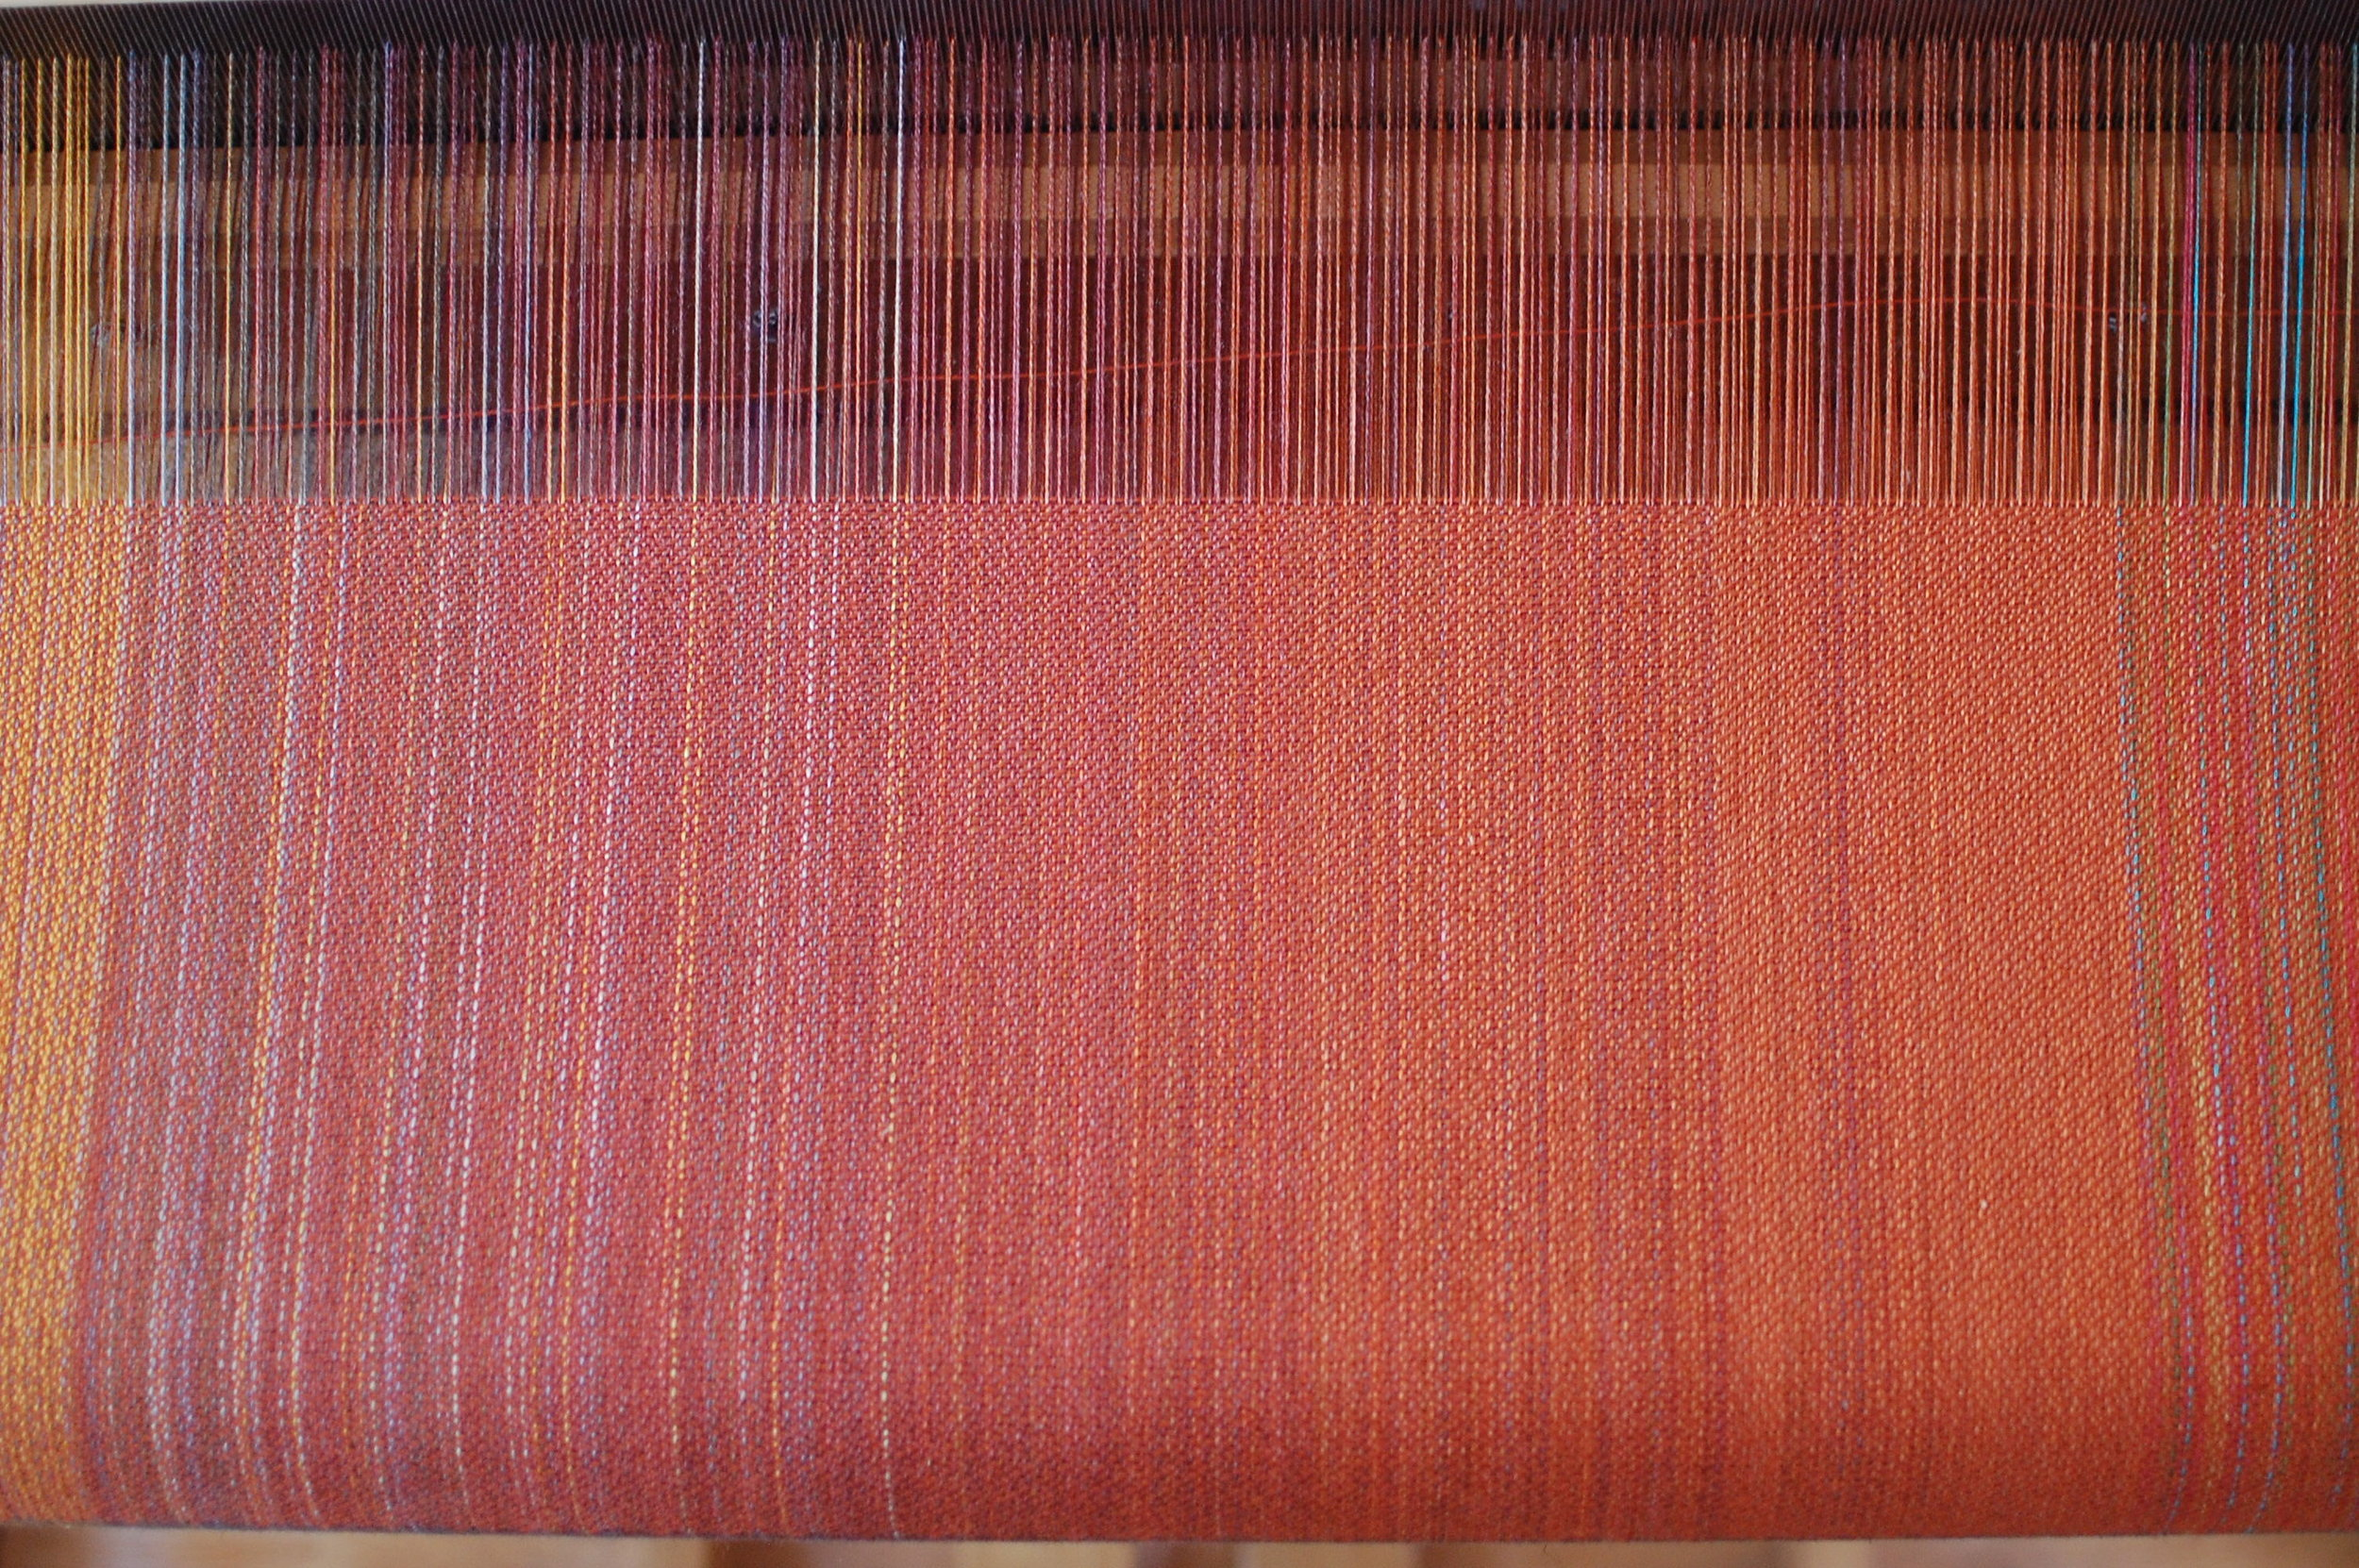 warp with rust orange cotton weft